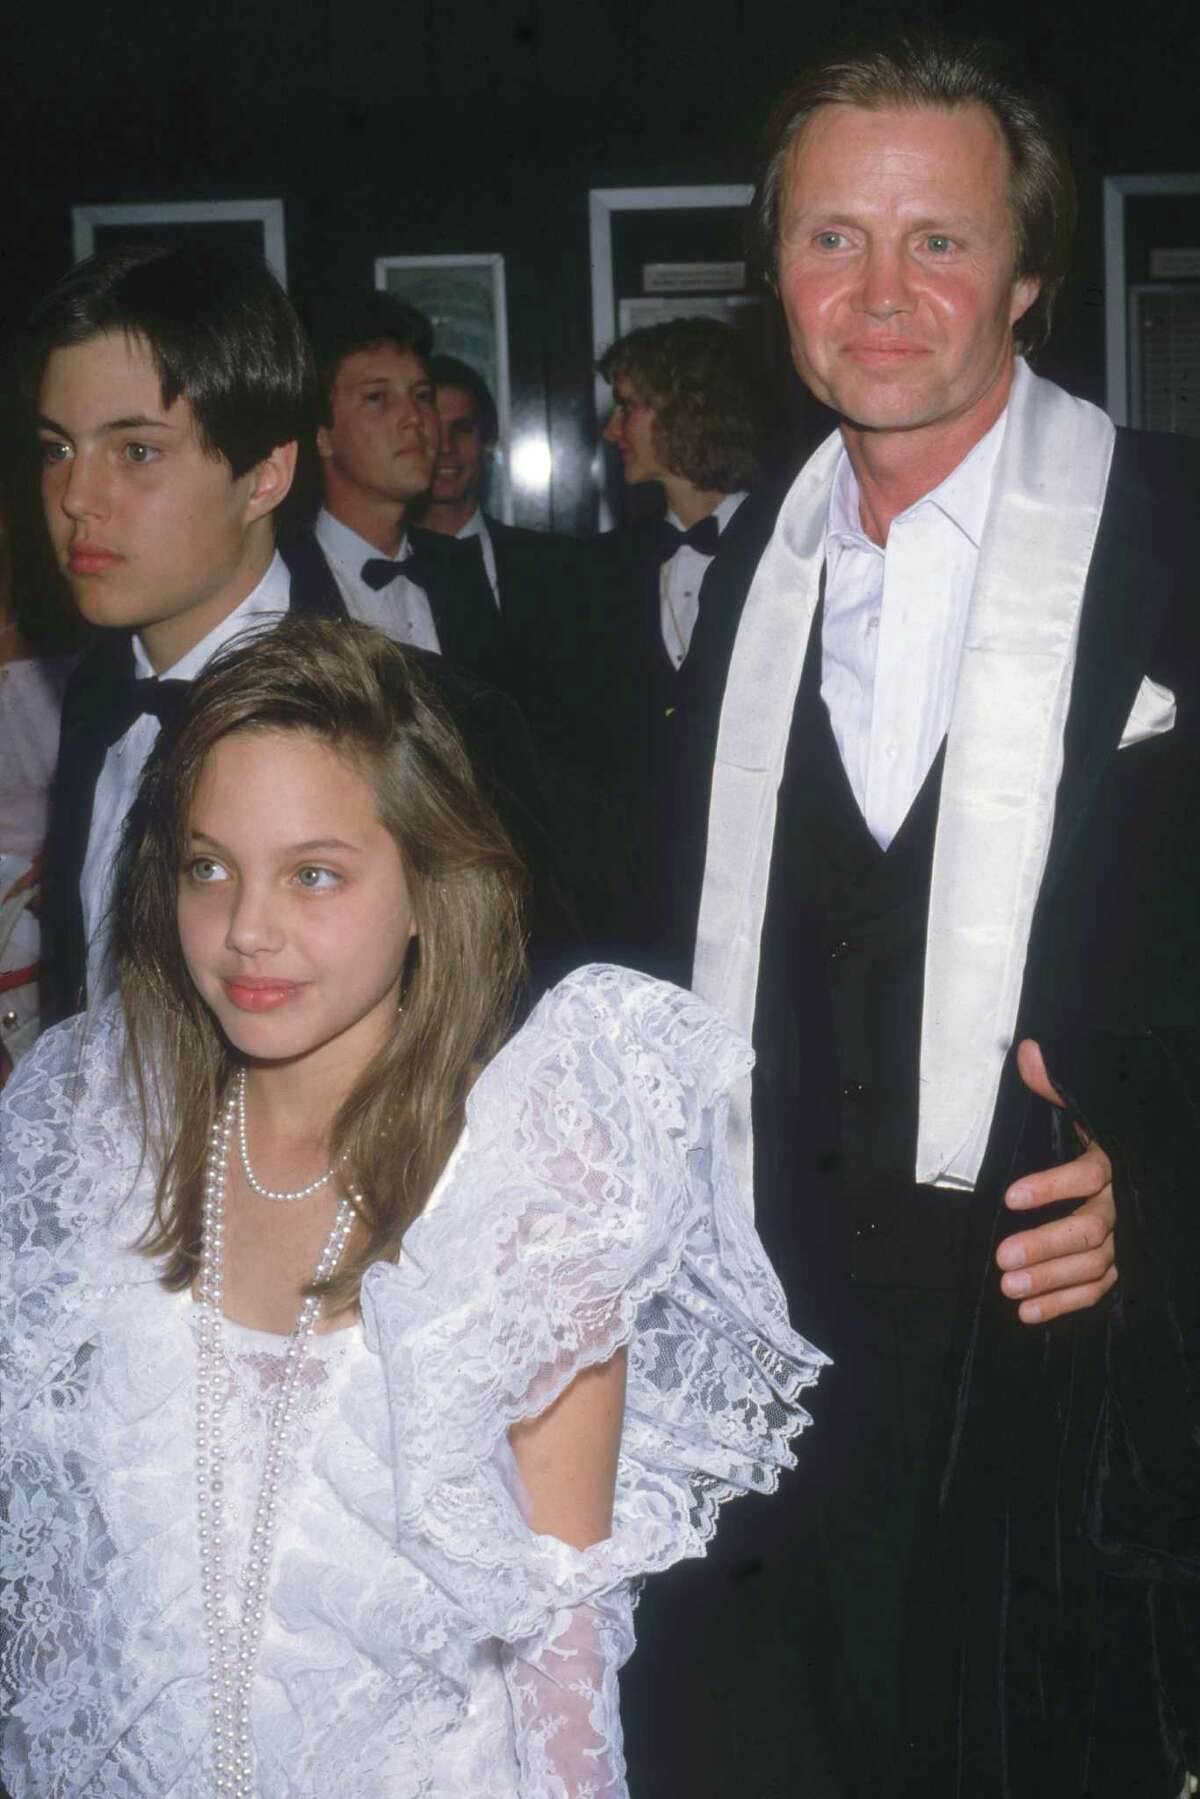 Jon Voight attends the Academy Awards with his son James Haven Voight (left) and daughter Angelina Jolie Voight, then 10 years old, in Los Angeles, March 24, 1986.